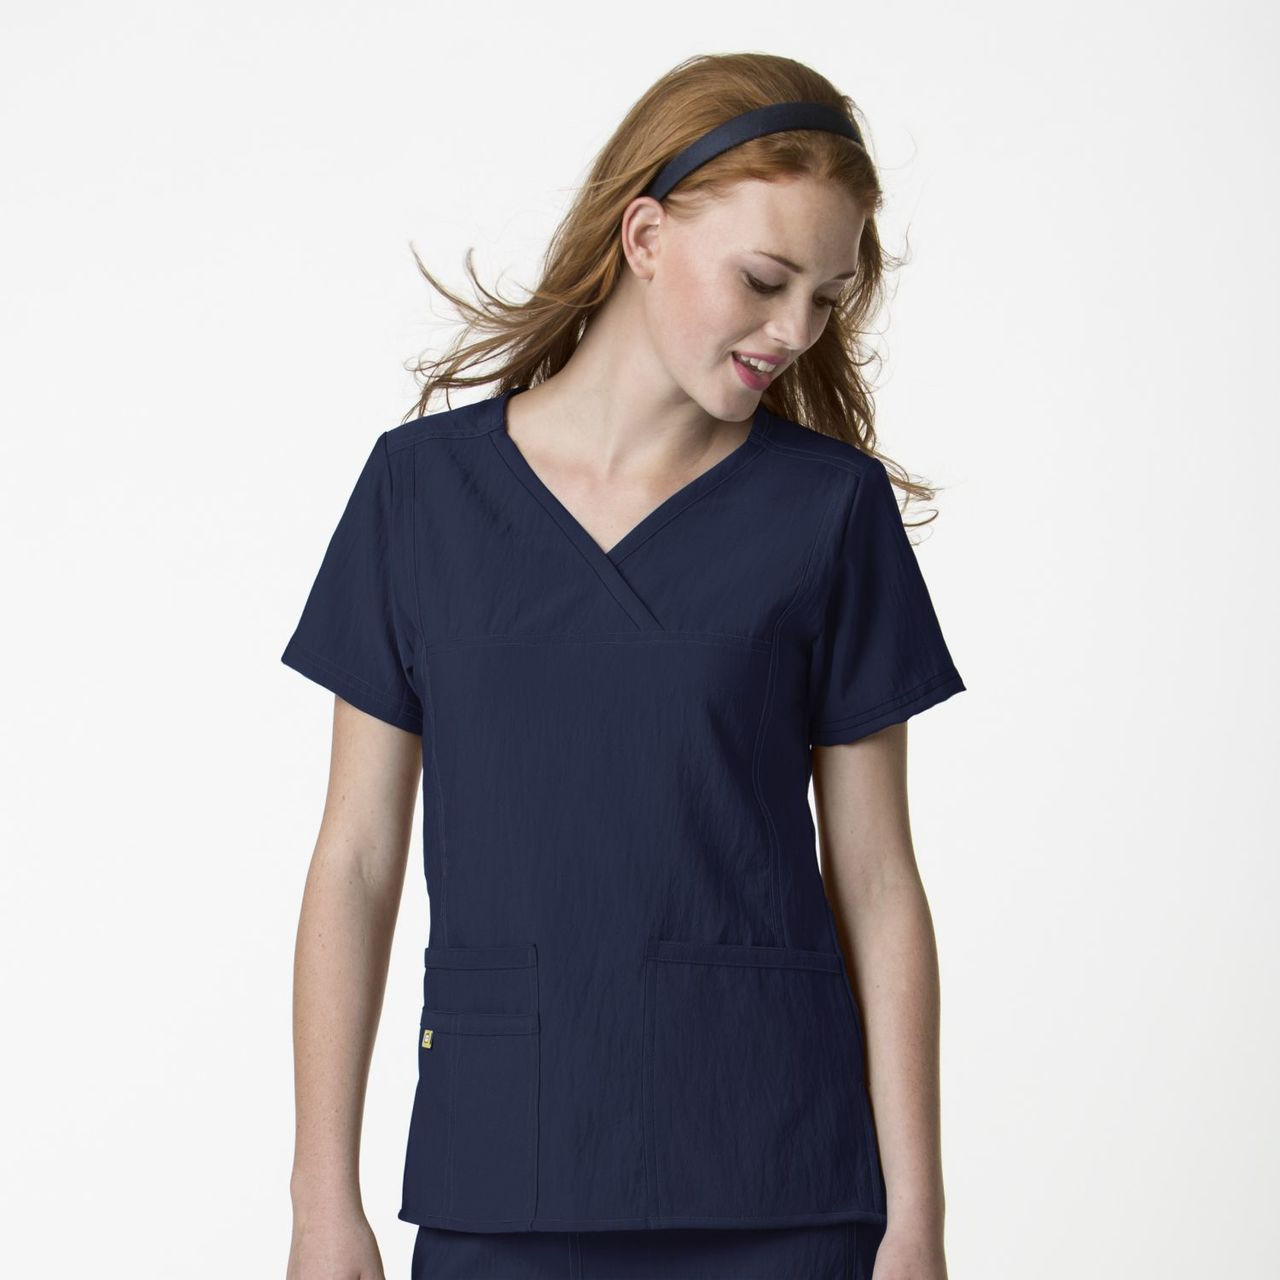 (6414) WonderWink Four-Stretch Scrubs - Y-Neck Top